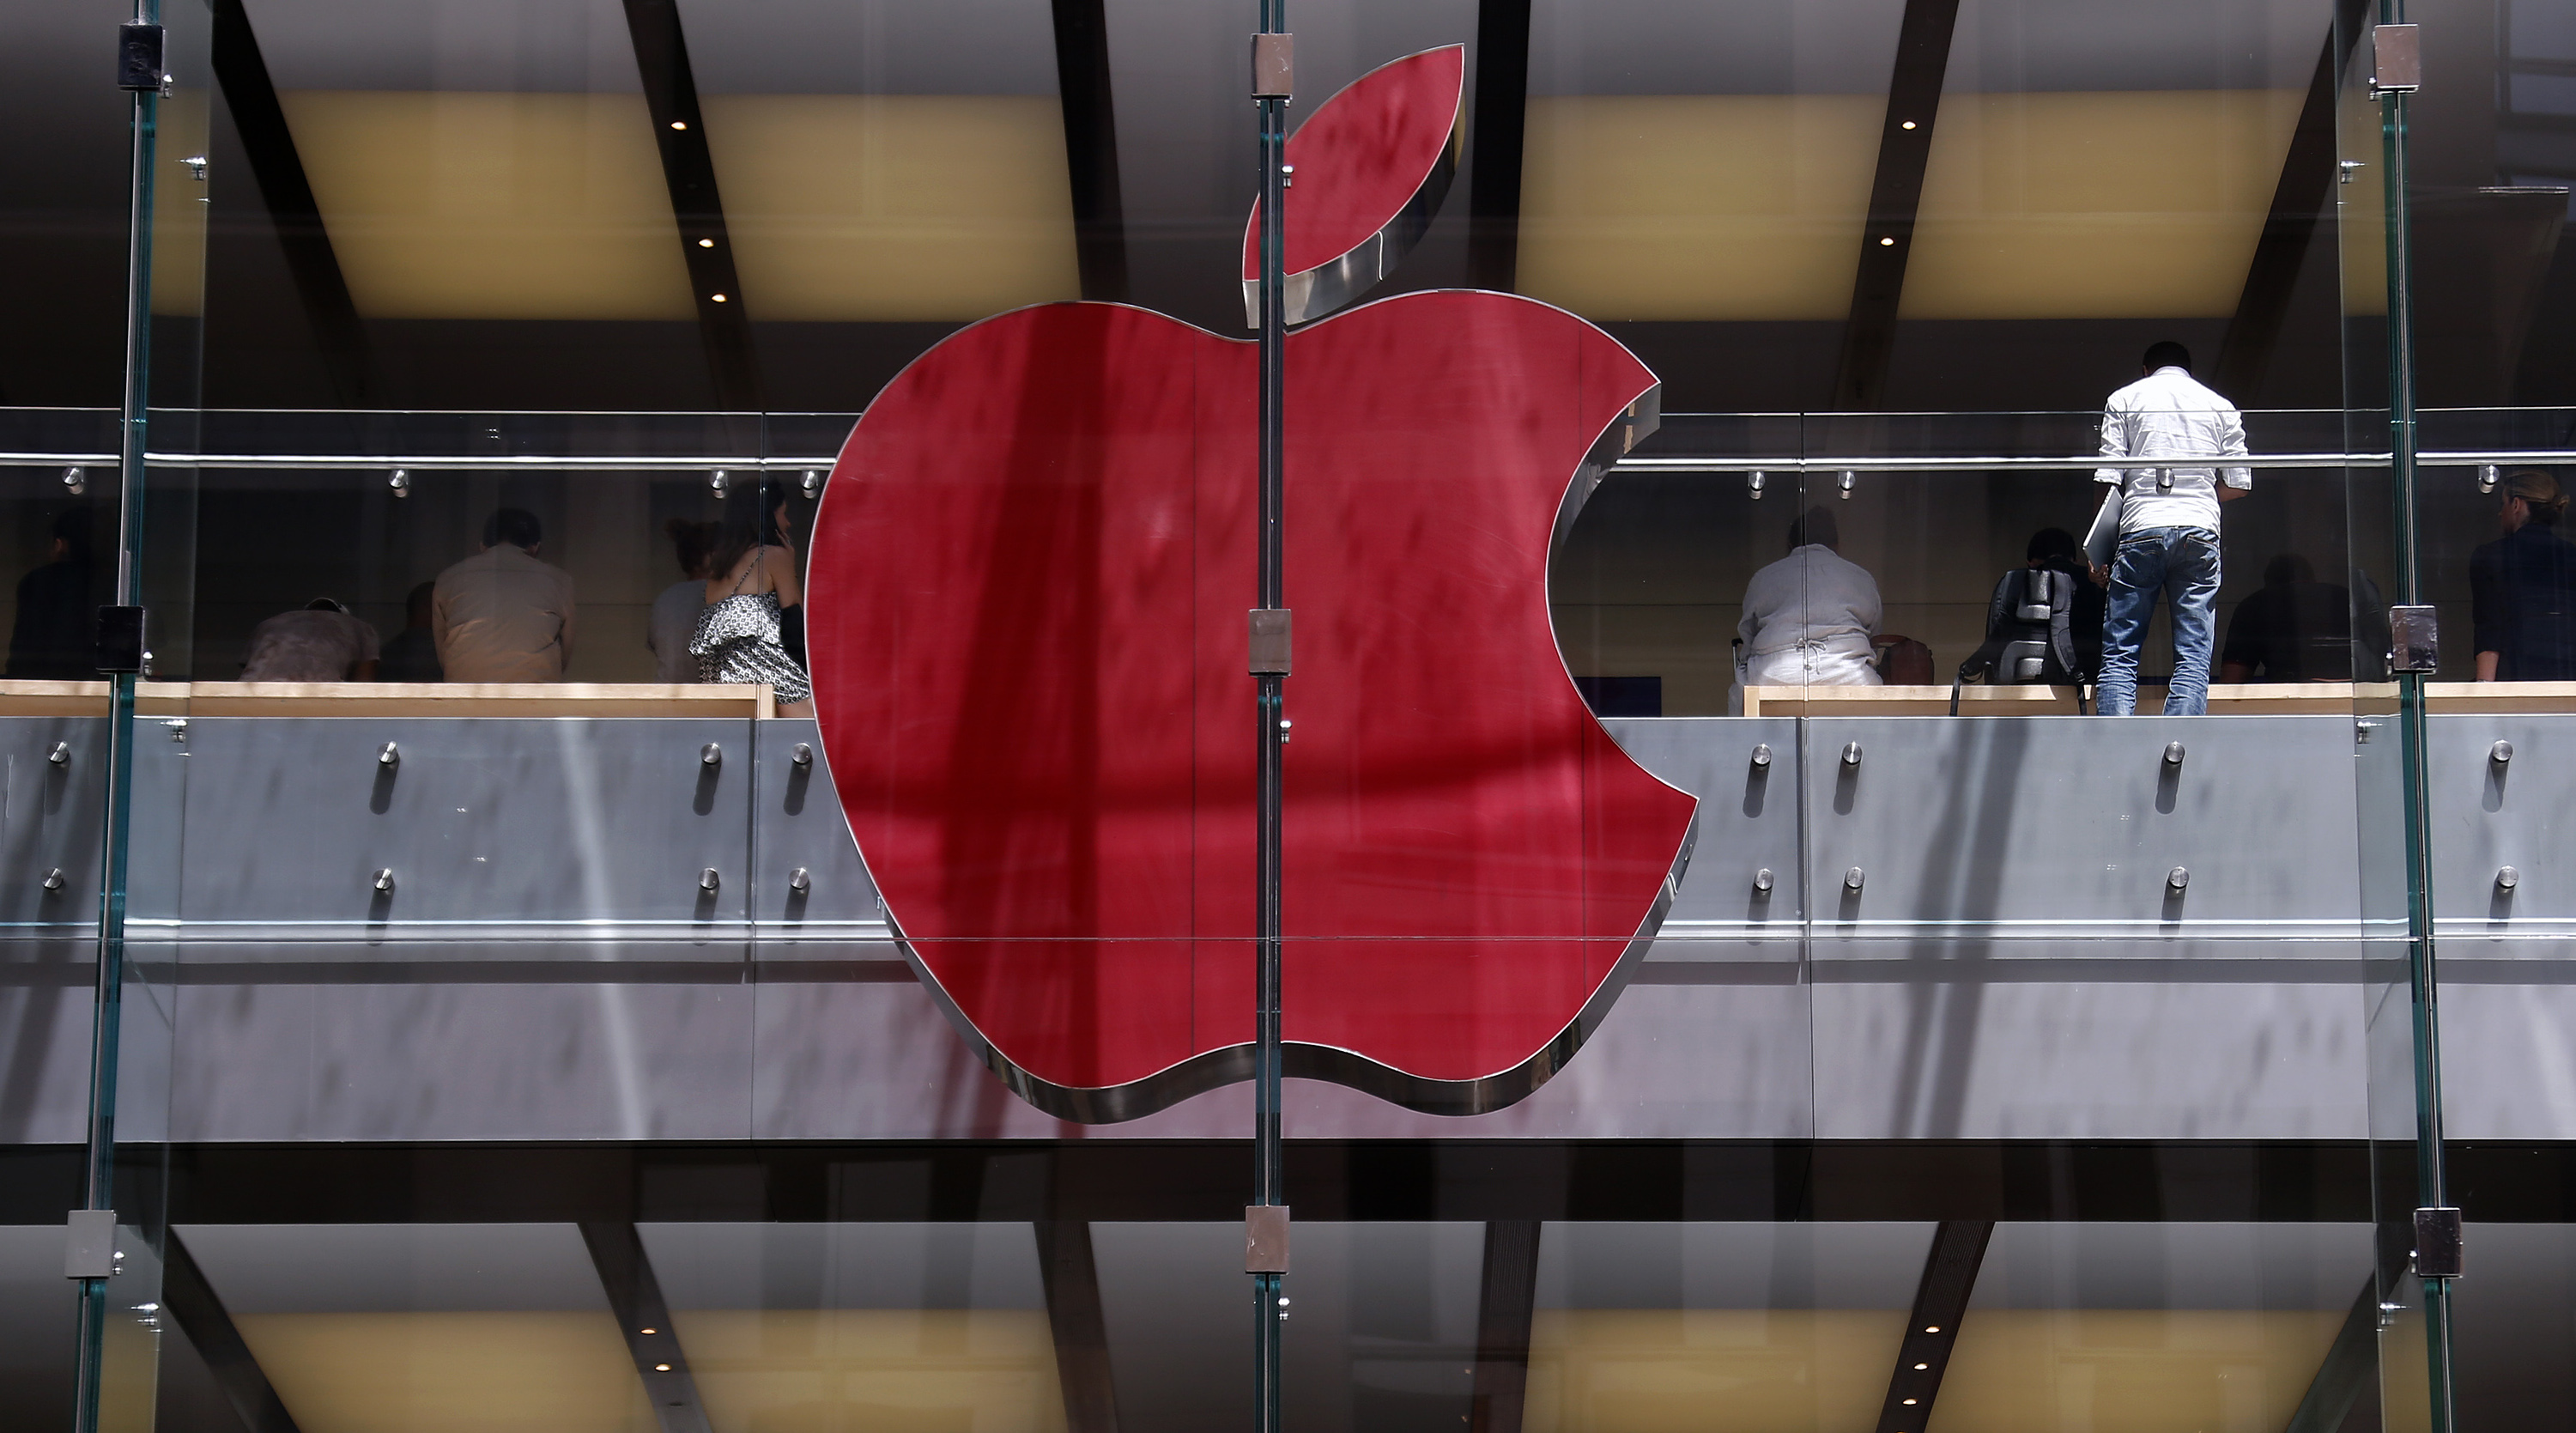 The Apple logo on display at the Sydney Apple Store is illuminated in red to mark World AIDS Day, in Sydney December 1, 2014.       REUTERS/David Gray      (AUSTRALIA - Tags: SOCIETY BUSINESS LOGO TPX IMAGES OF THE DAY) - RTR4G6J1